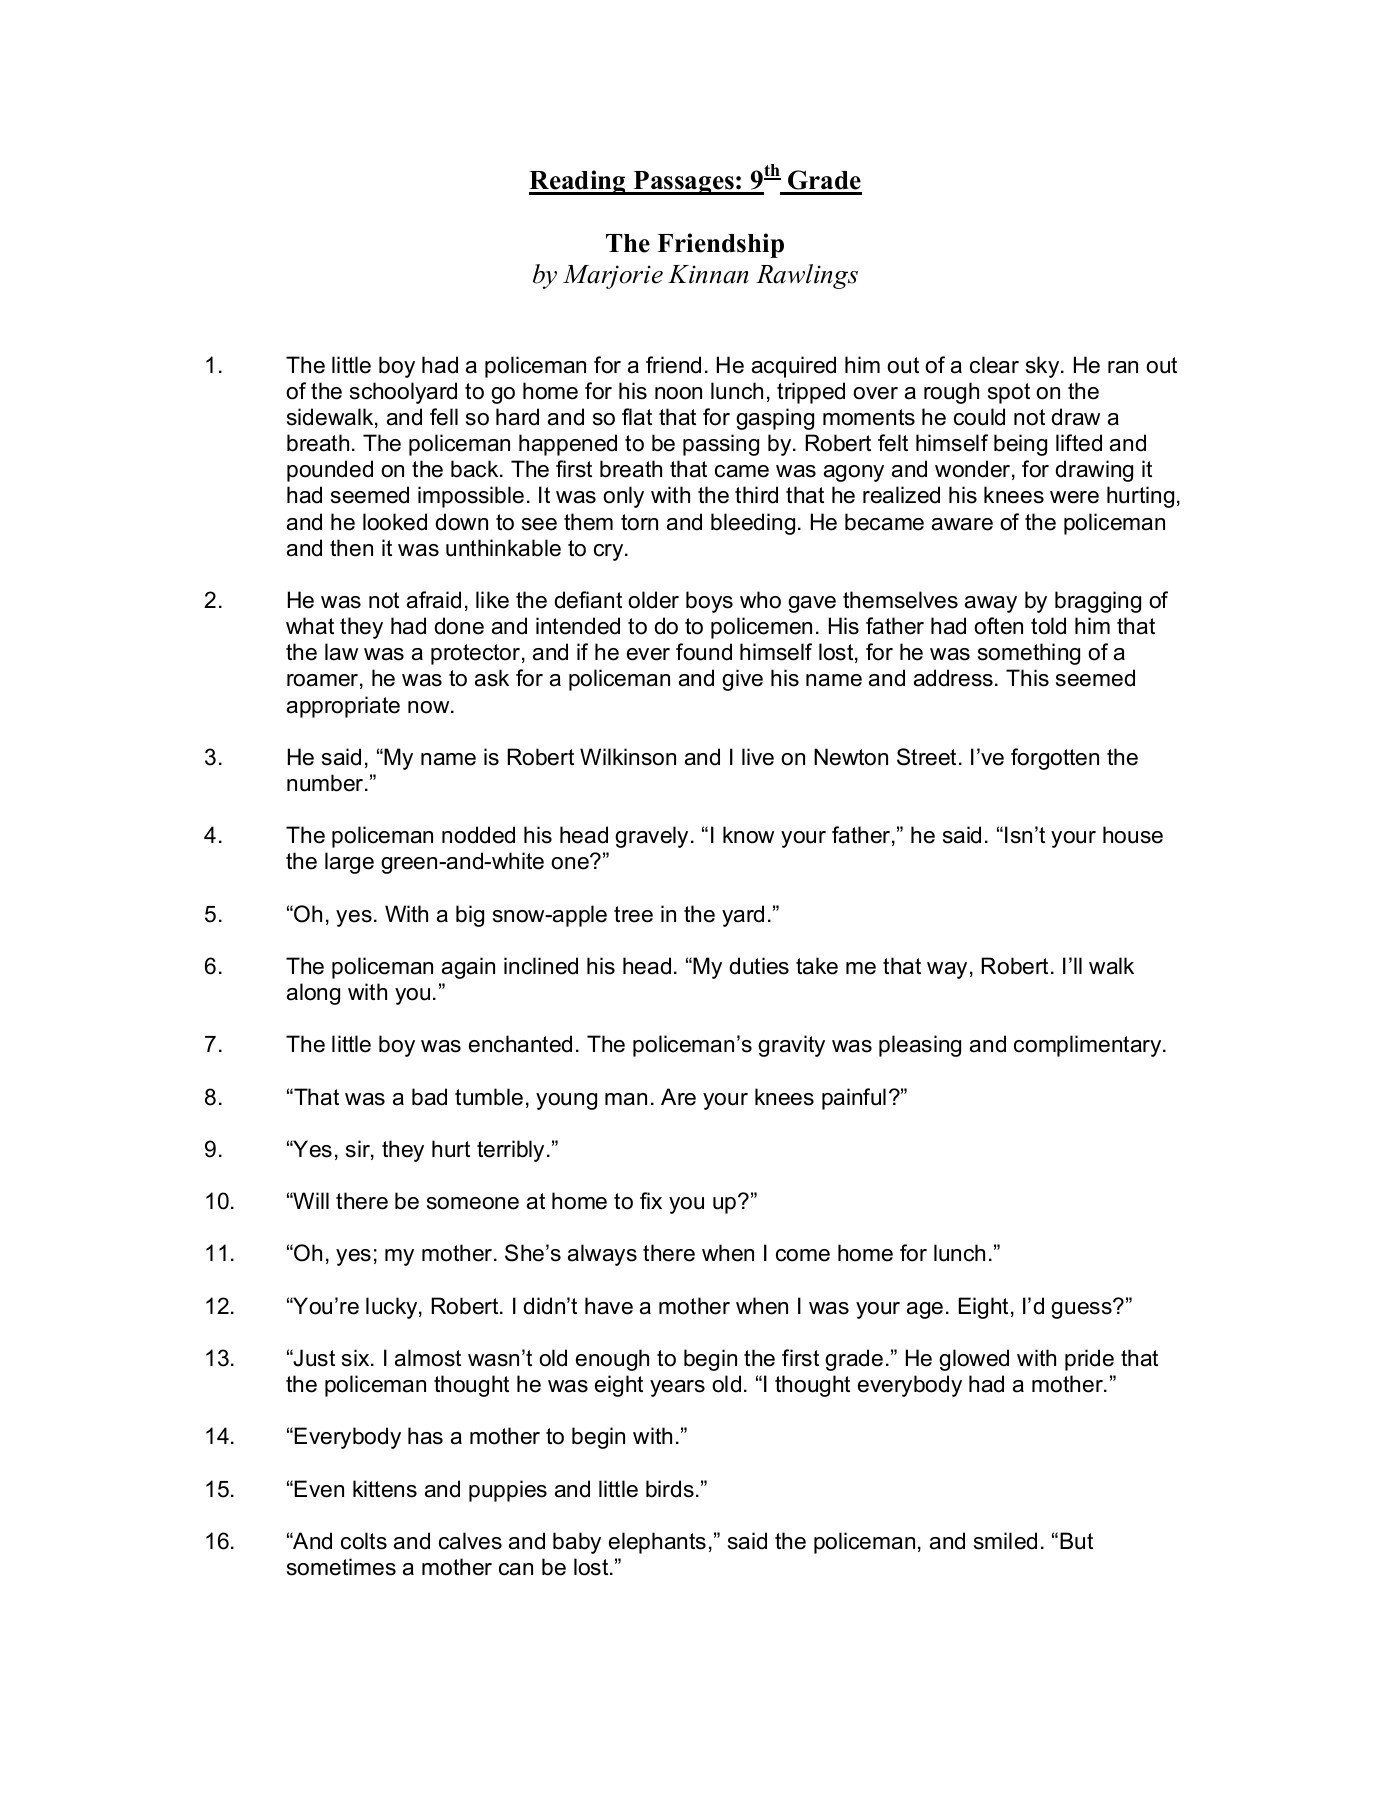 9th Grade Reading Comprehension Worksheet Reading Passages 9th Grade Dallas County Schools